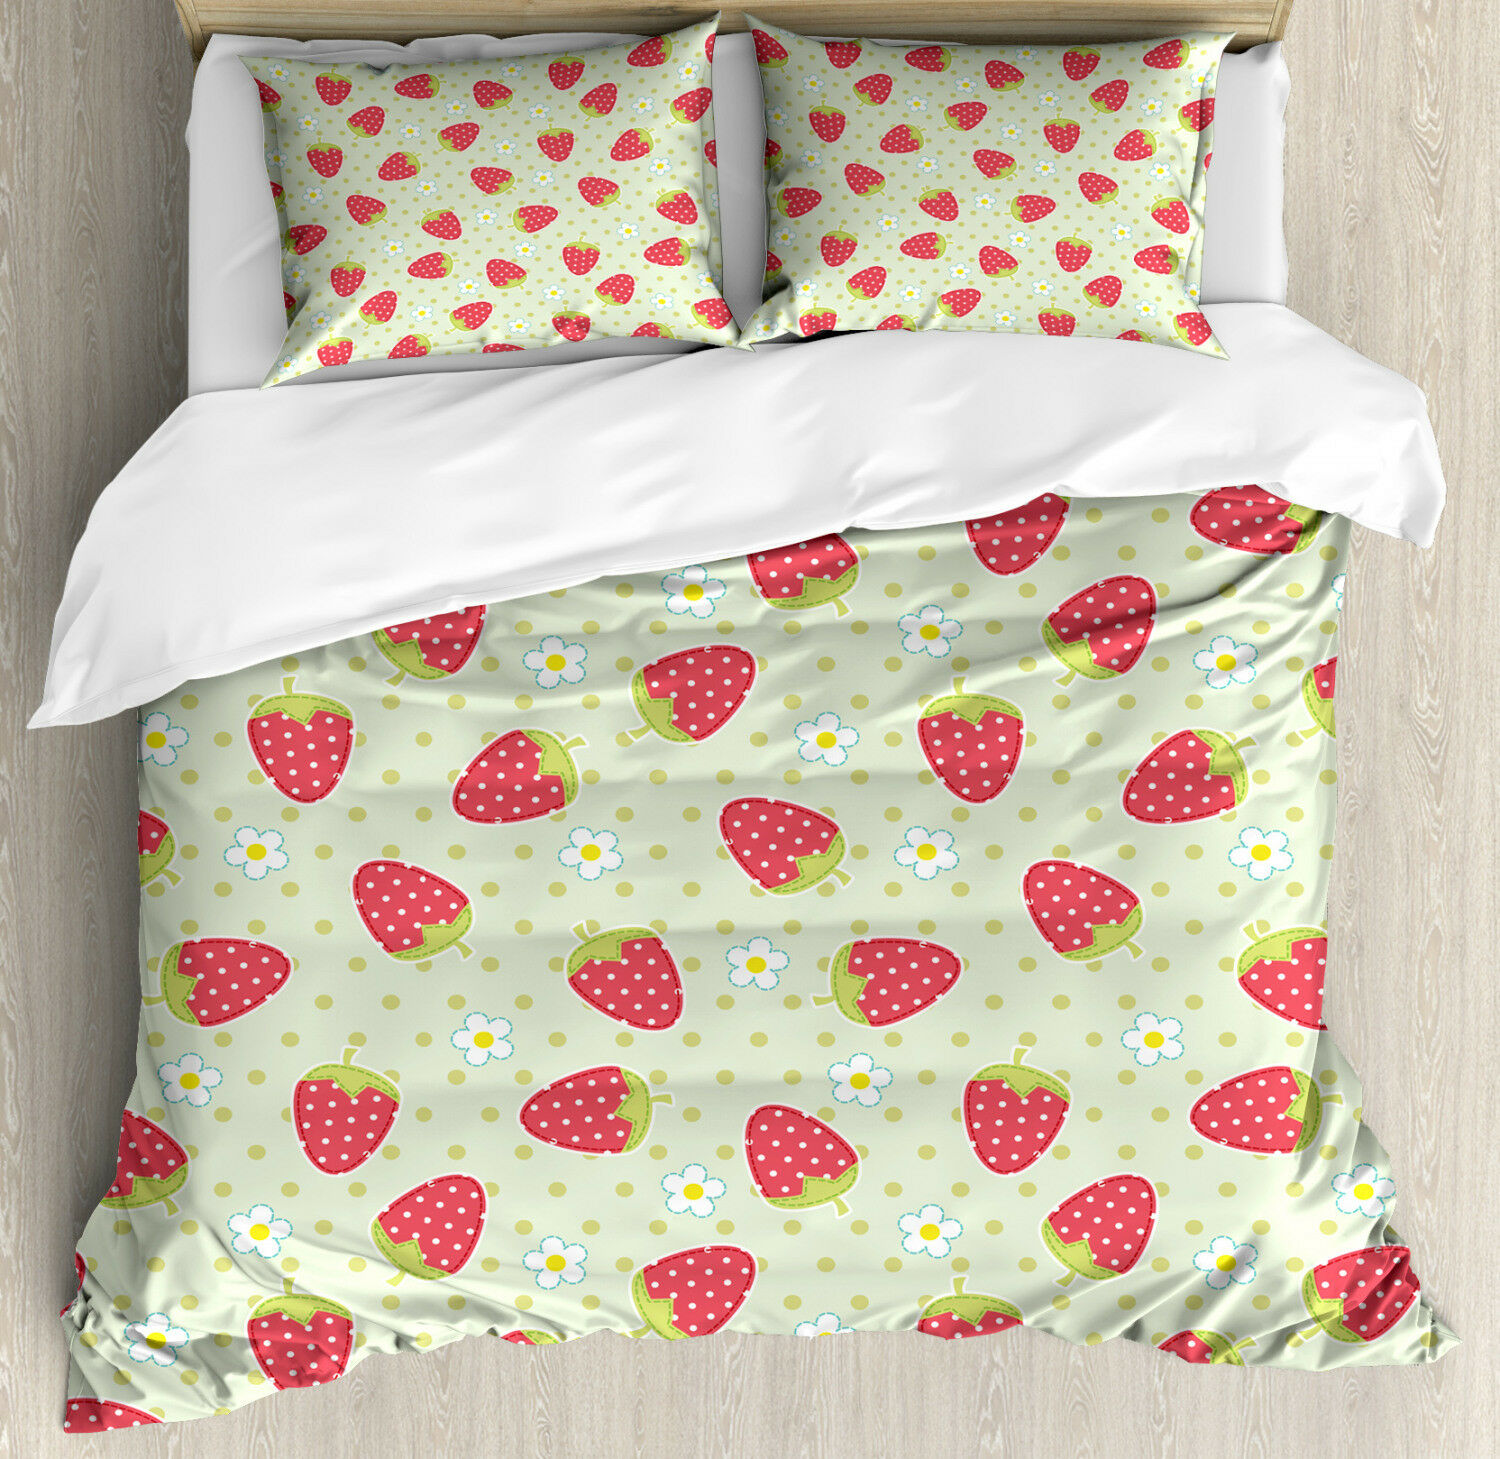 Fruits Duvet Cover Set with Pillow Shams Spring Blossoms Cartoon Print